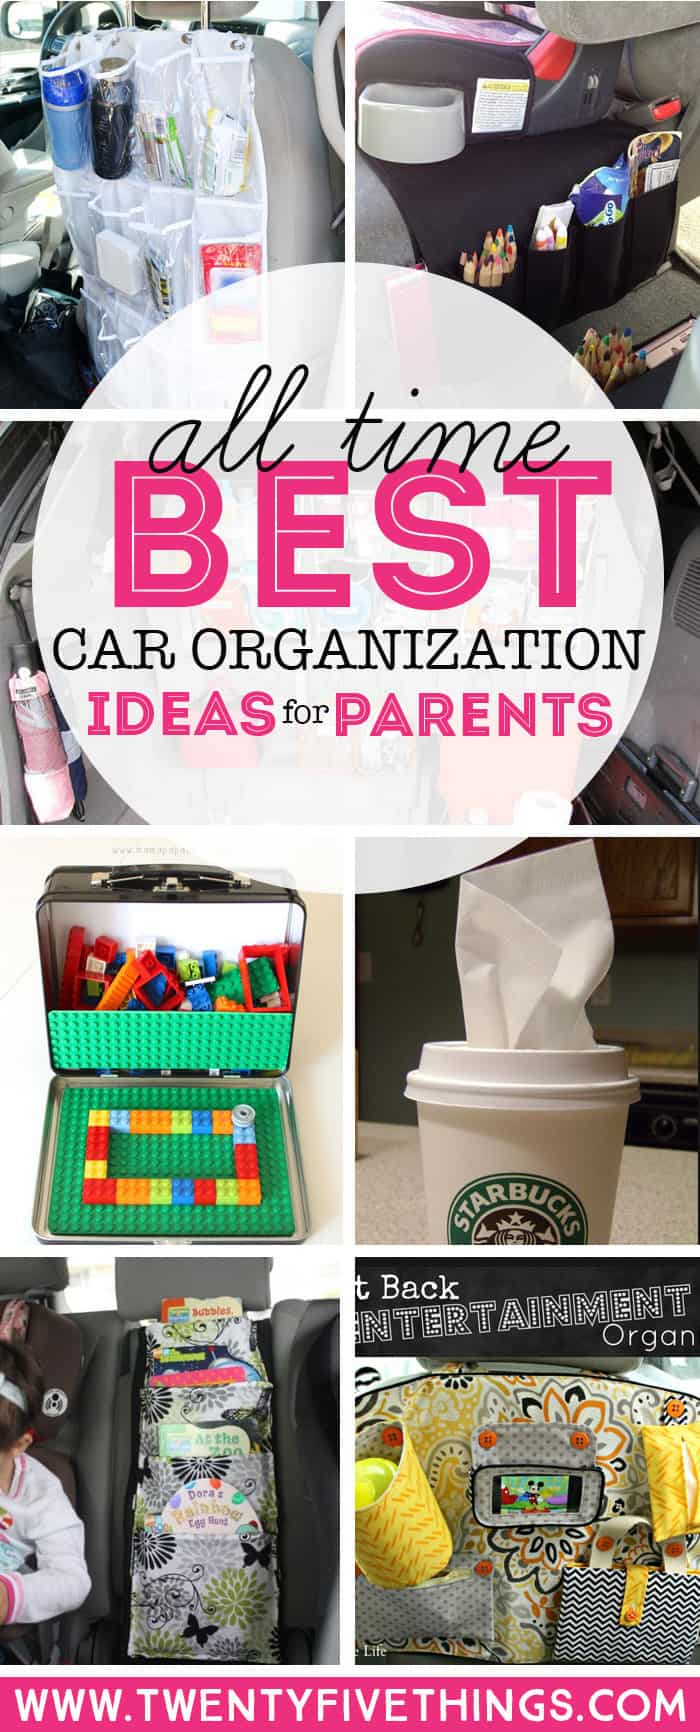 Get the all-time best car organization ideas if you have kids. This article will show you how to finally have a place in your vehicle for everything your kids need when riding around town or during longer car trips. #CarOrganization #kids #hacks